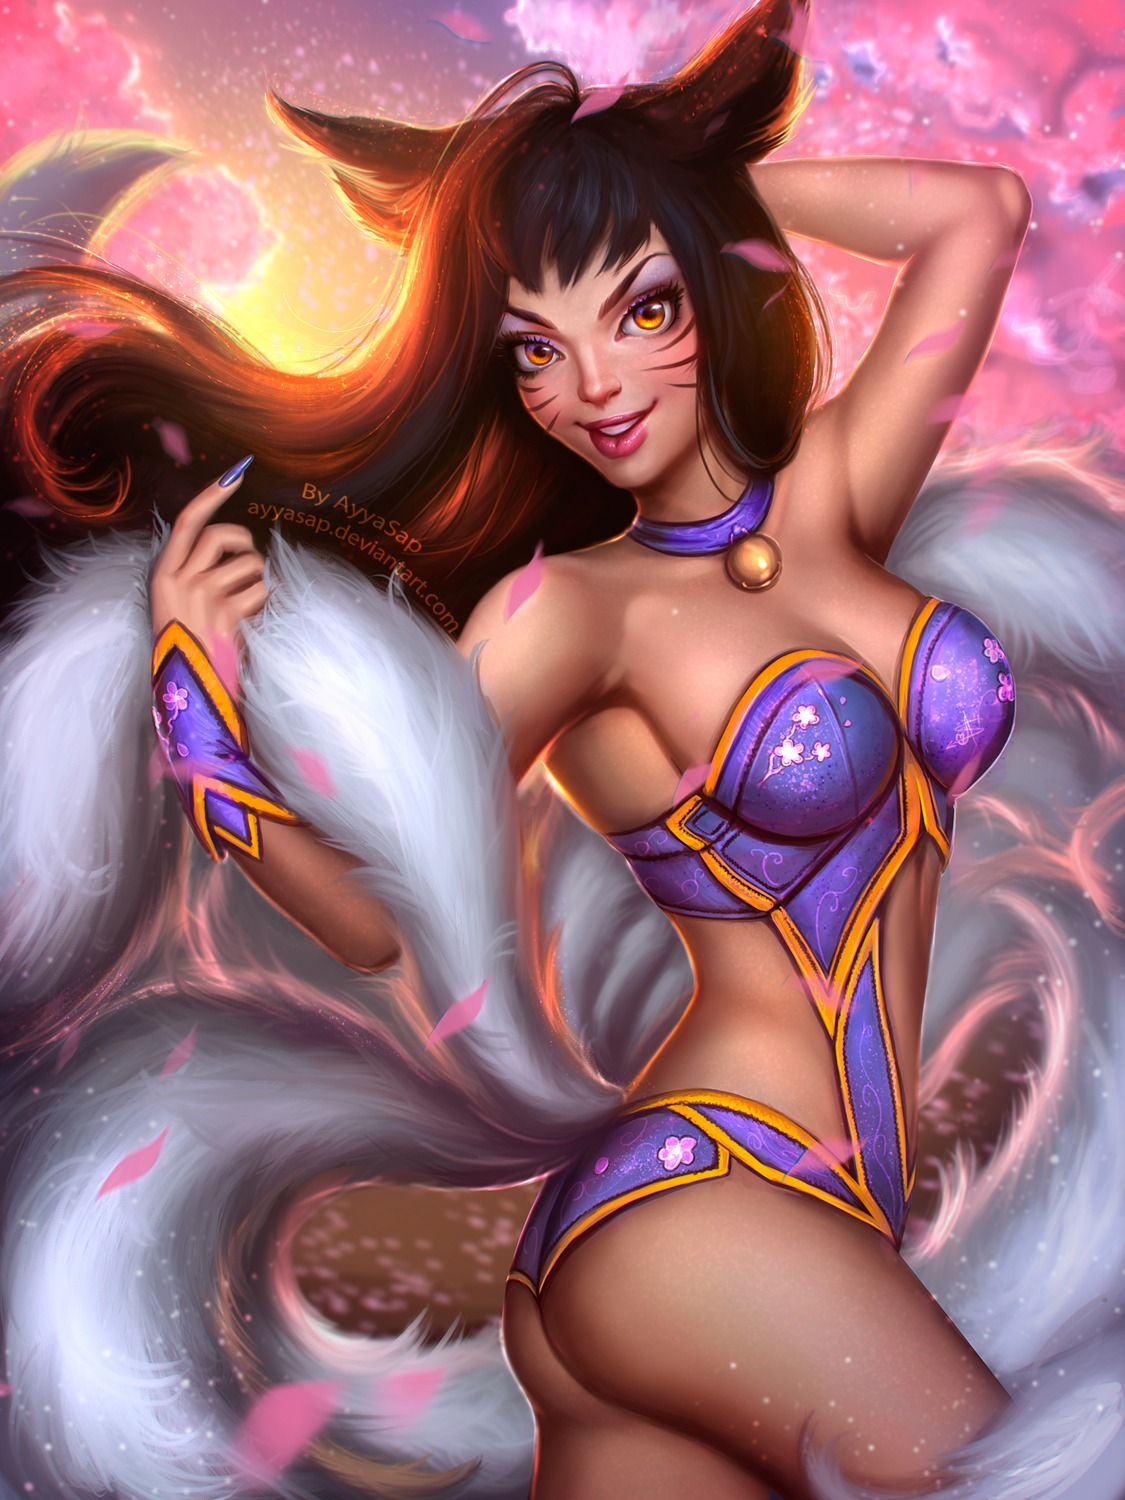 ahri animal_ears ass ayyasap bikini_armor cleavage kitsune league_of_legends tail